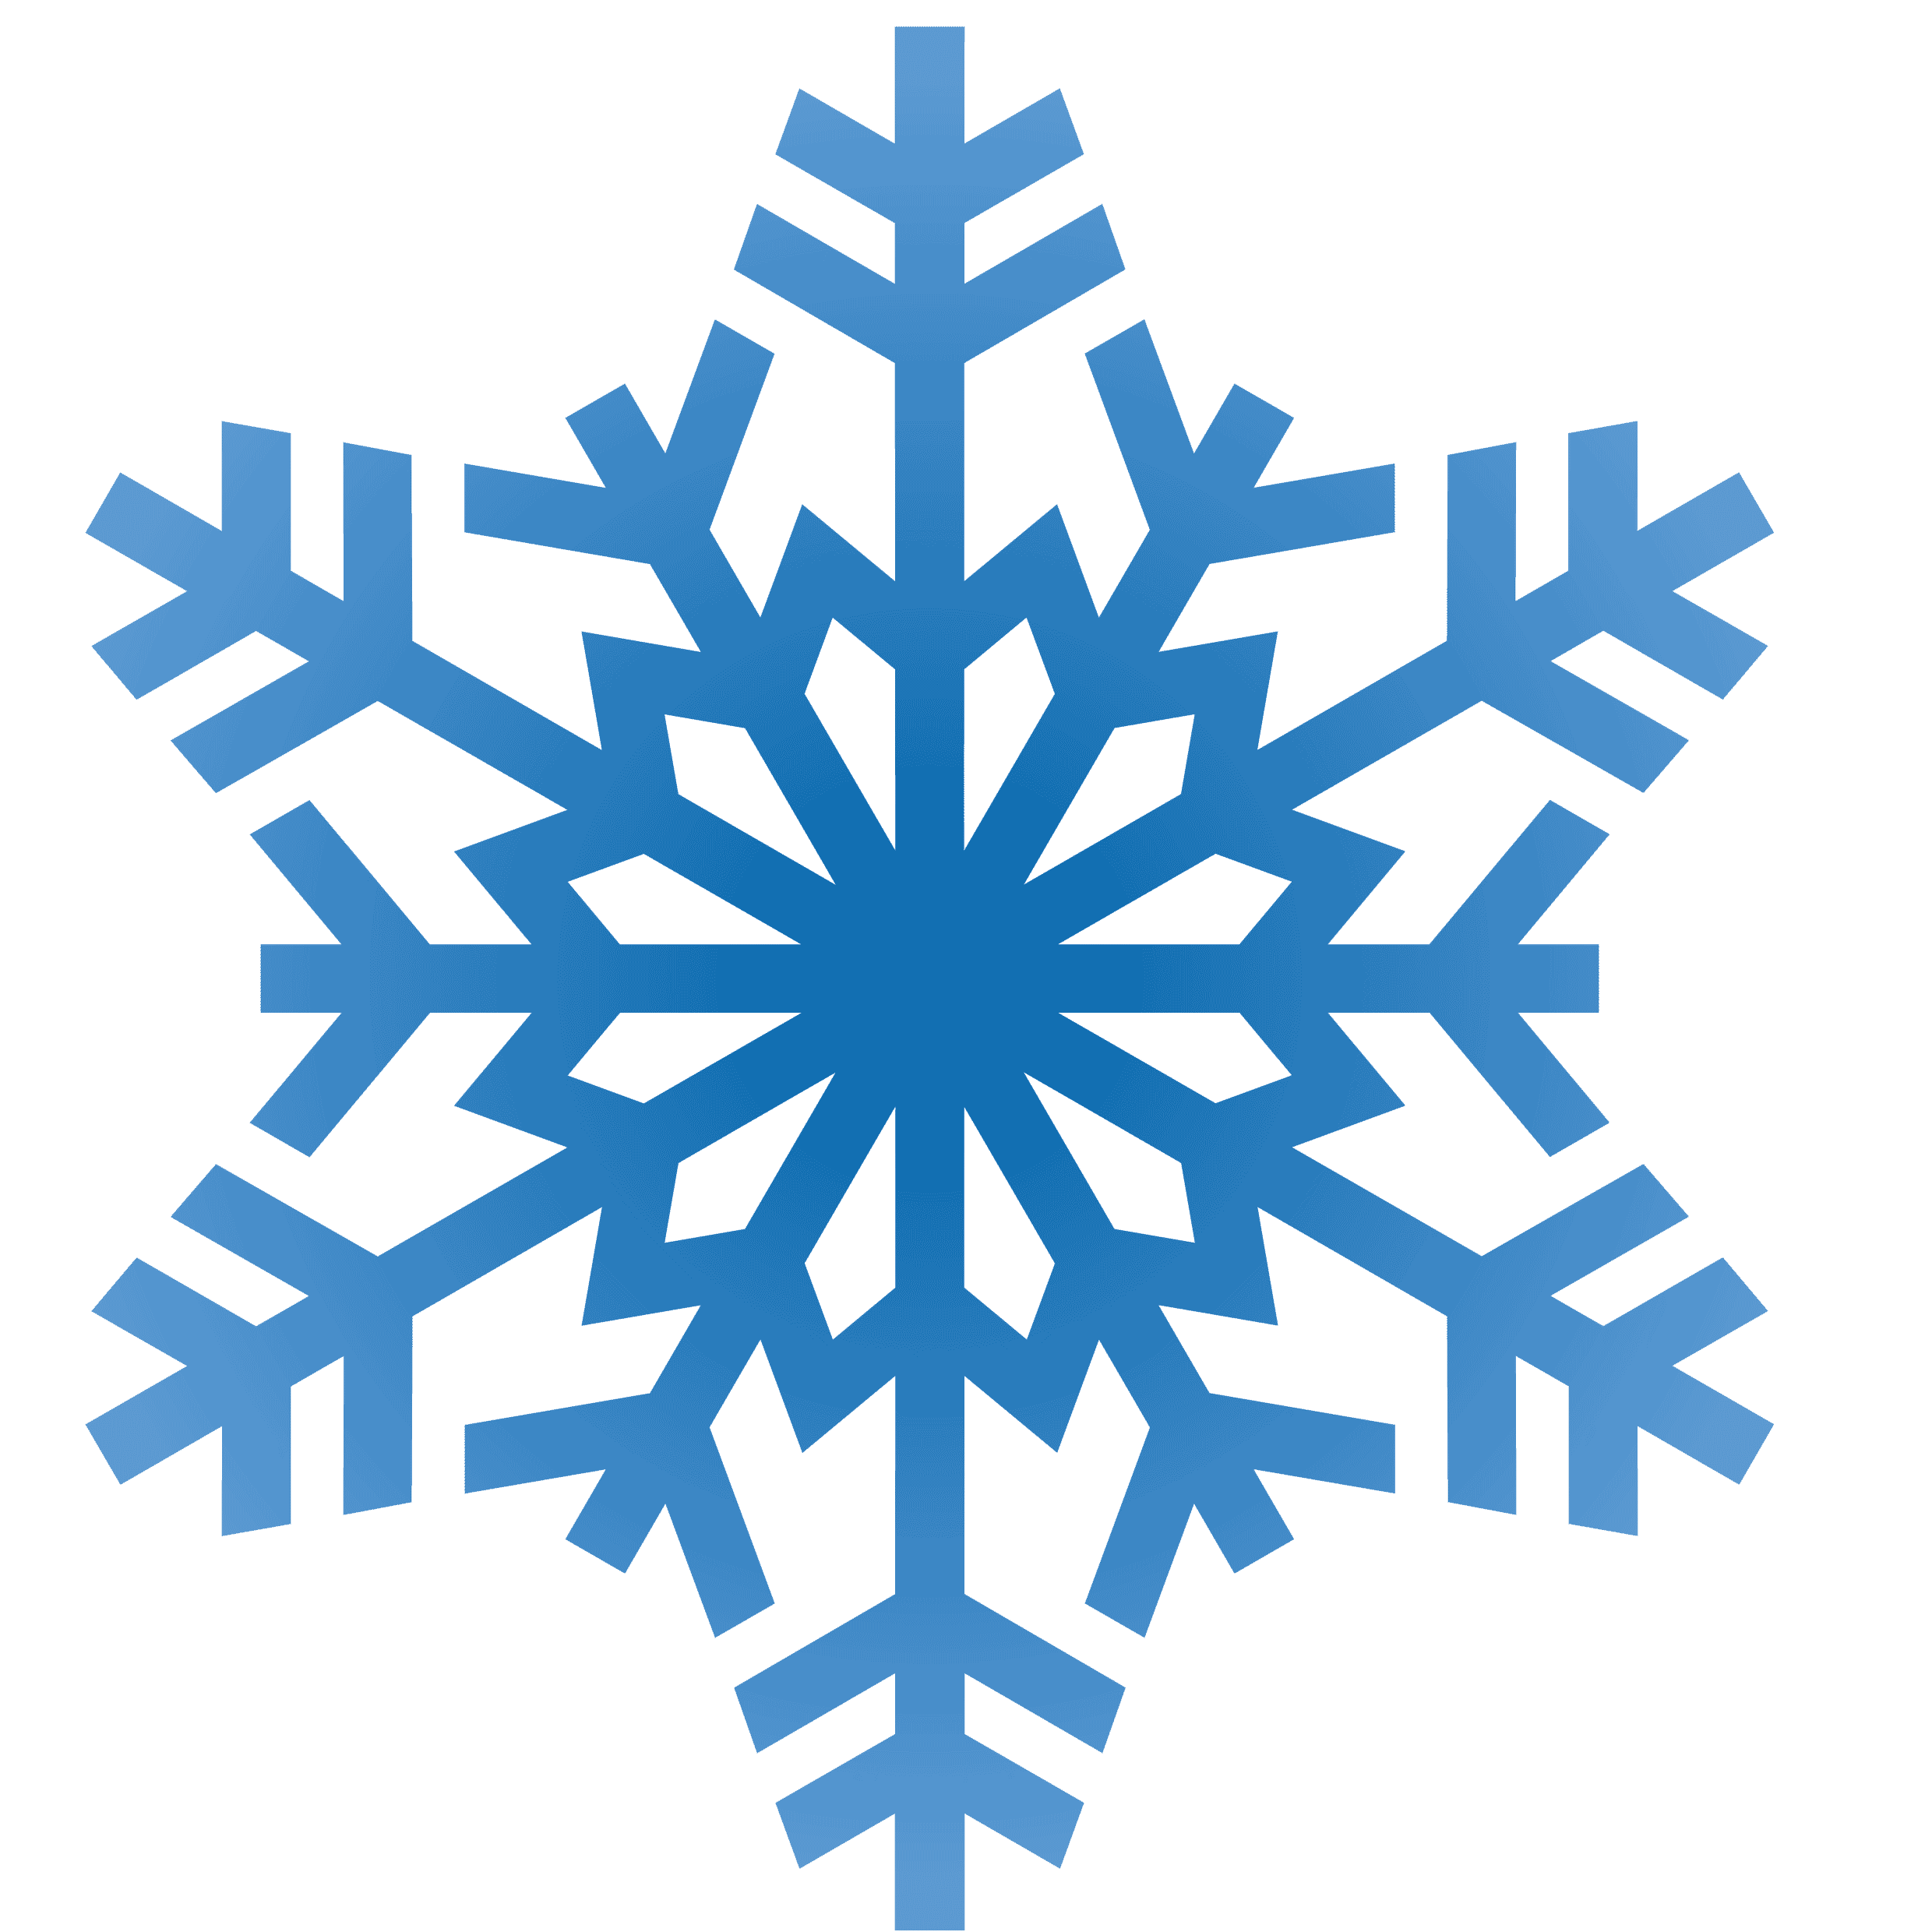 Transparent snowflakes clipart vector freeuse Free Snowflake Graphic, Download Free Clip Art, Free Clip ... vector freeuse